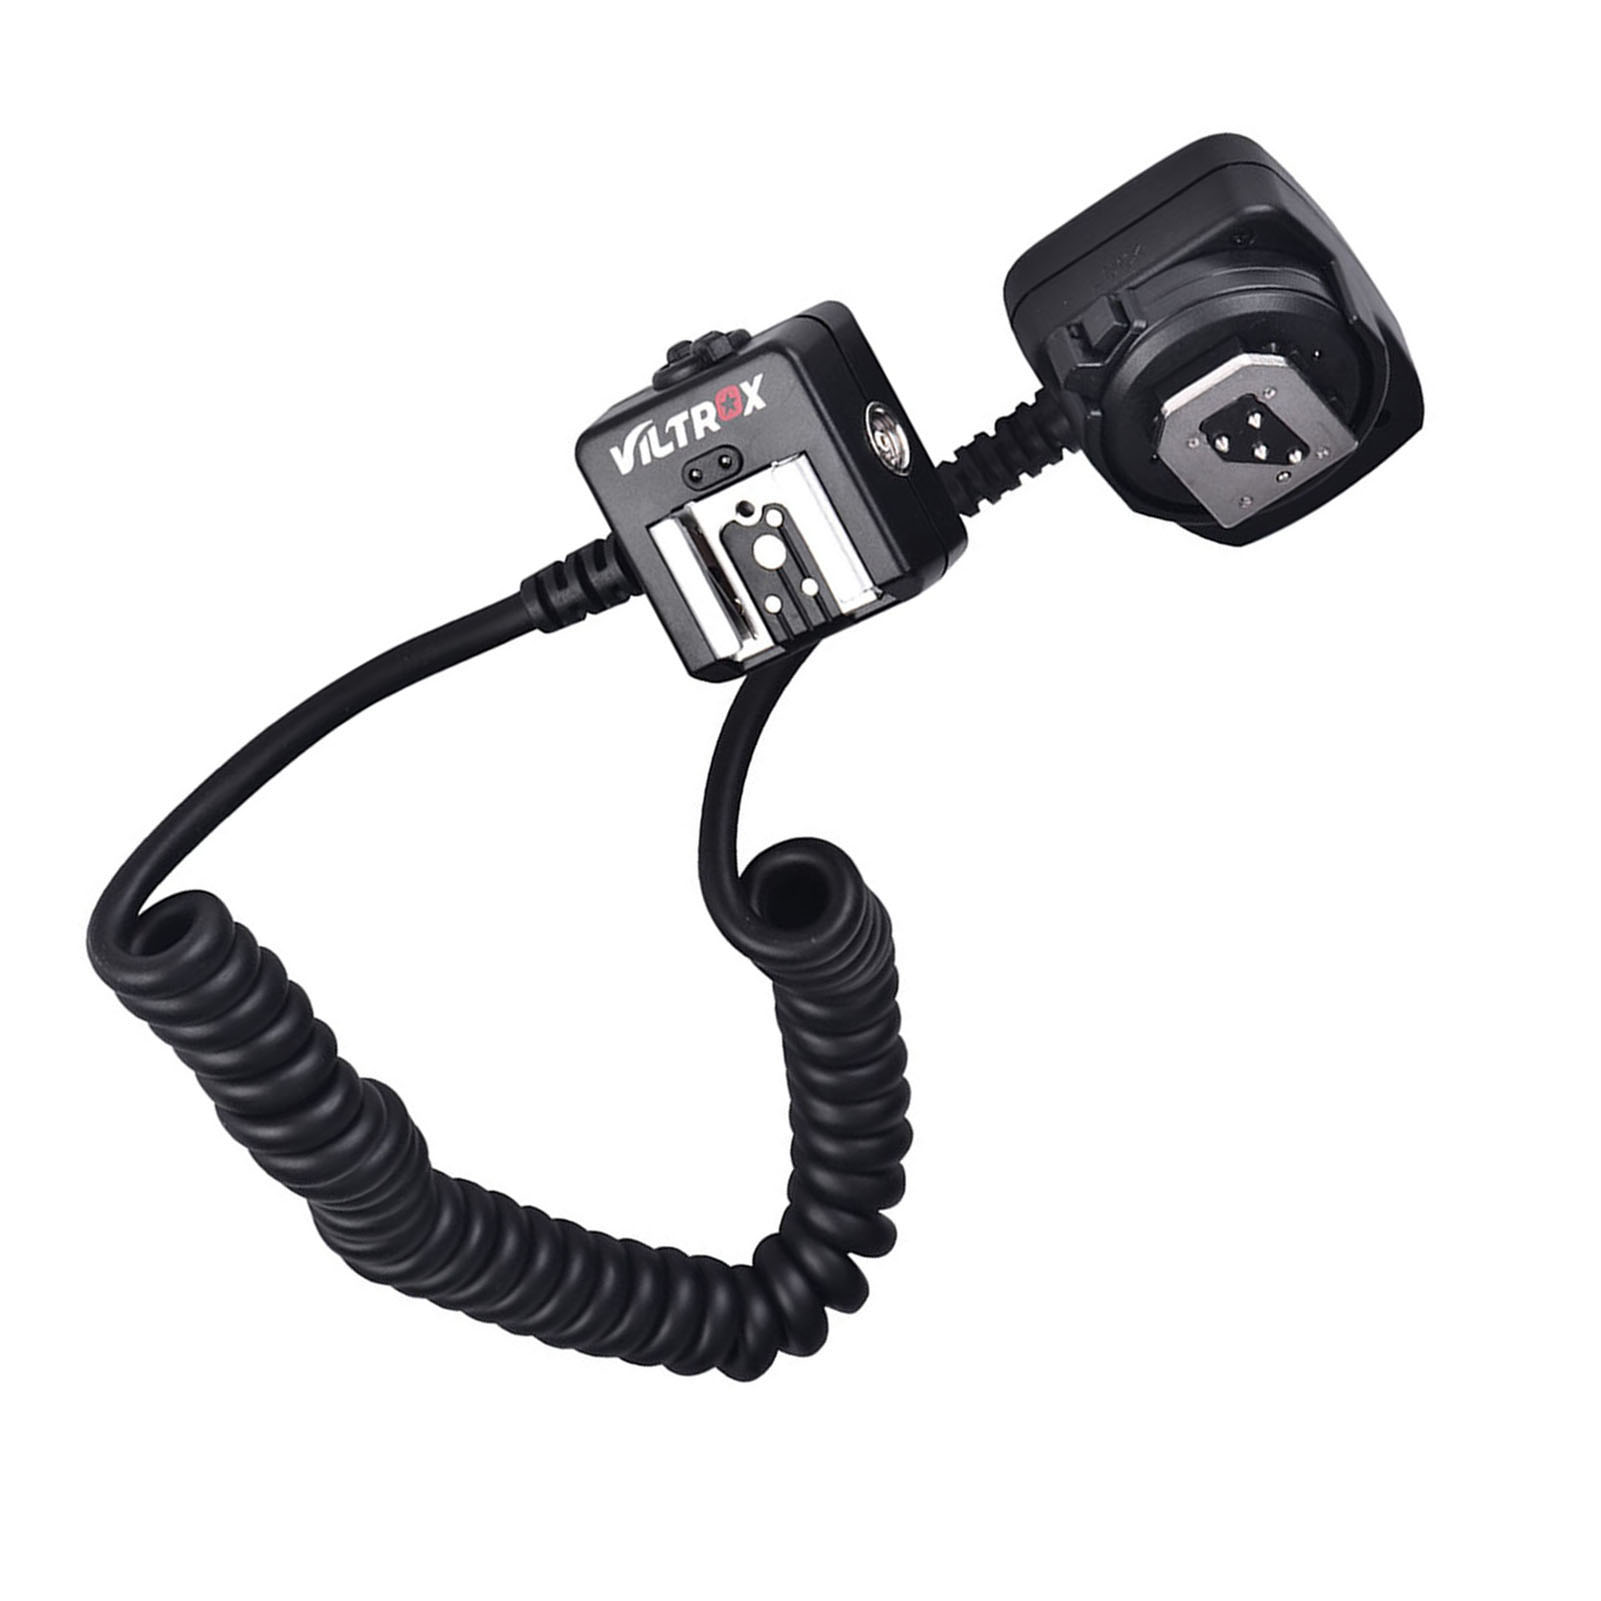 Viltrox SC-30 Off-Camera TTL Flash Extension Cord Accessory for Nikon Hot Shoe